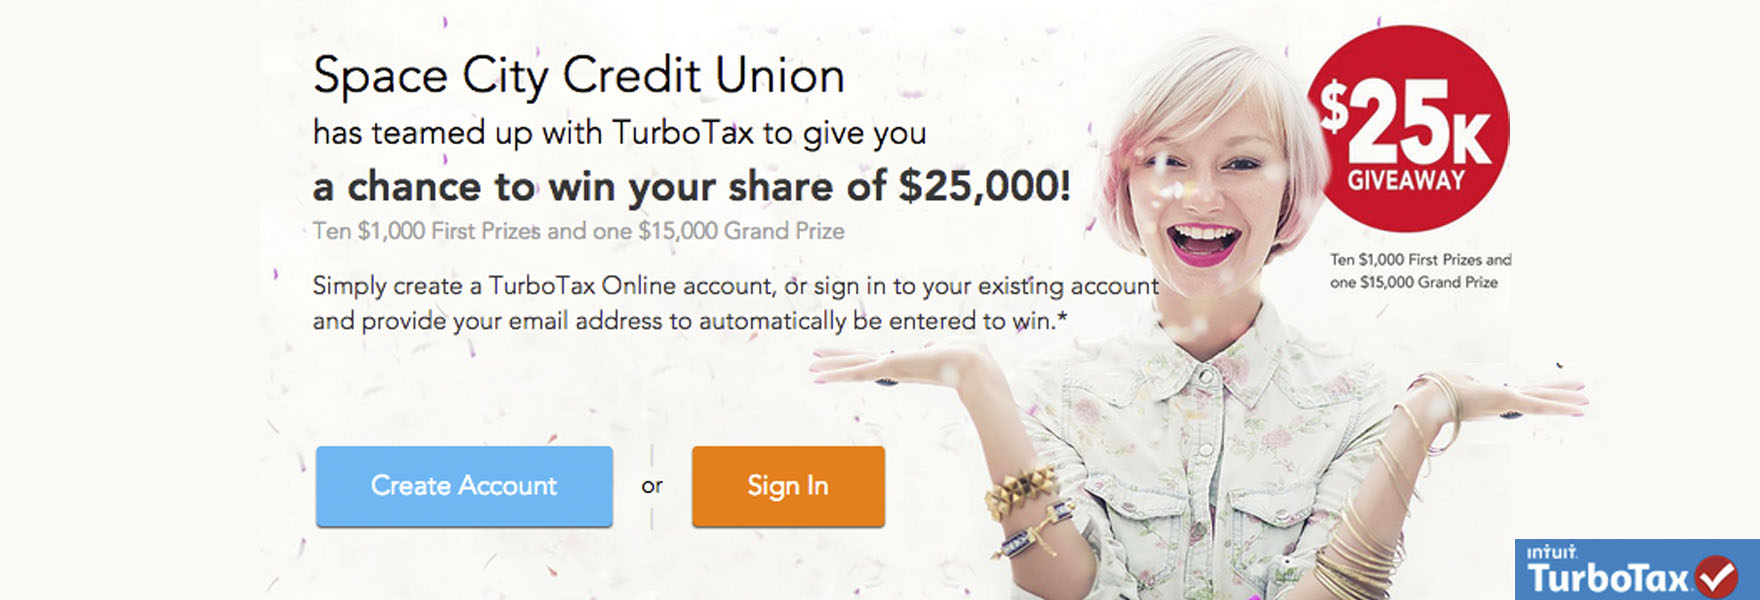 turbo_tax_banner